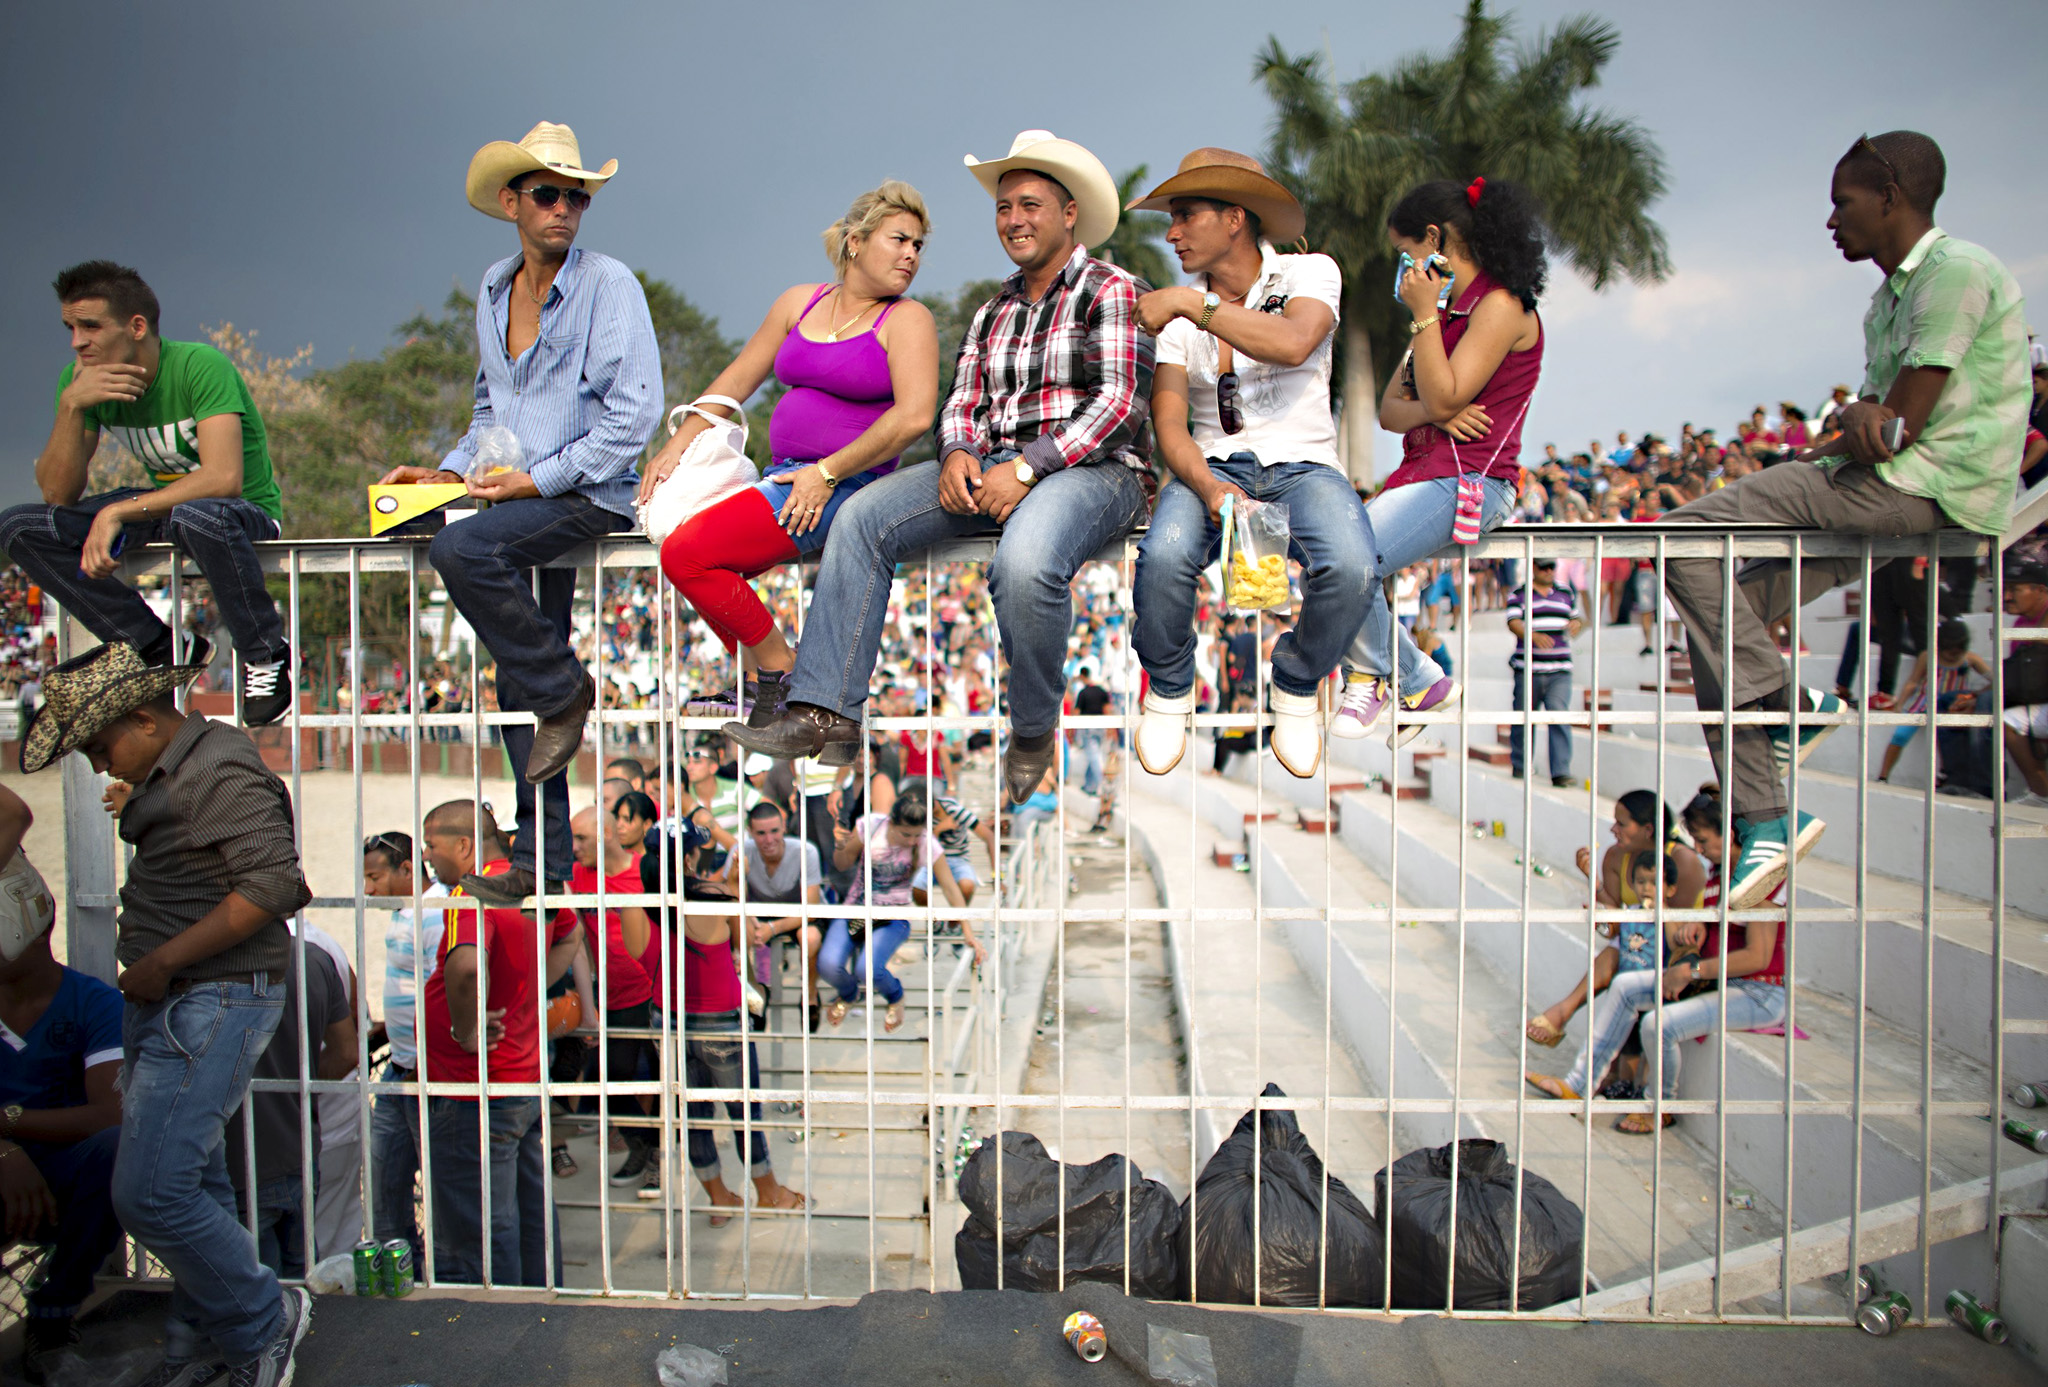 People react as they watch a rodeo show at the International Livestock Fair in Havana March 21, 2015. Picture taken March 21. REUTERS/Alexandre Meneghini